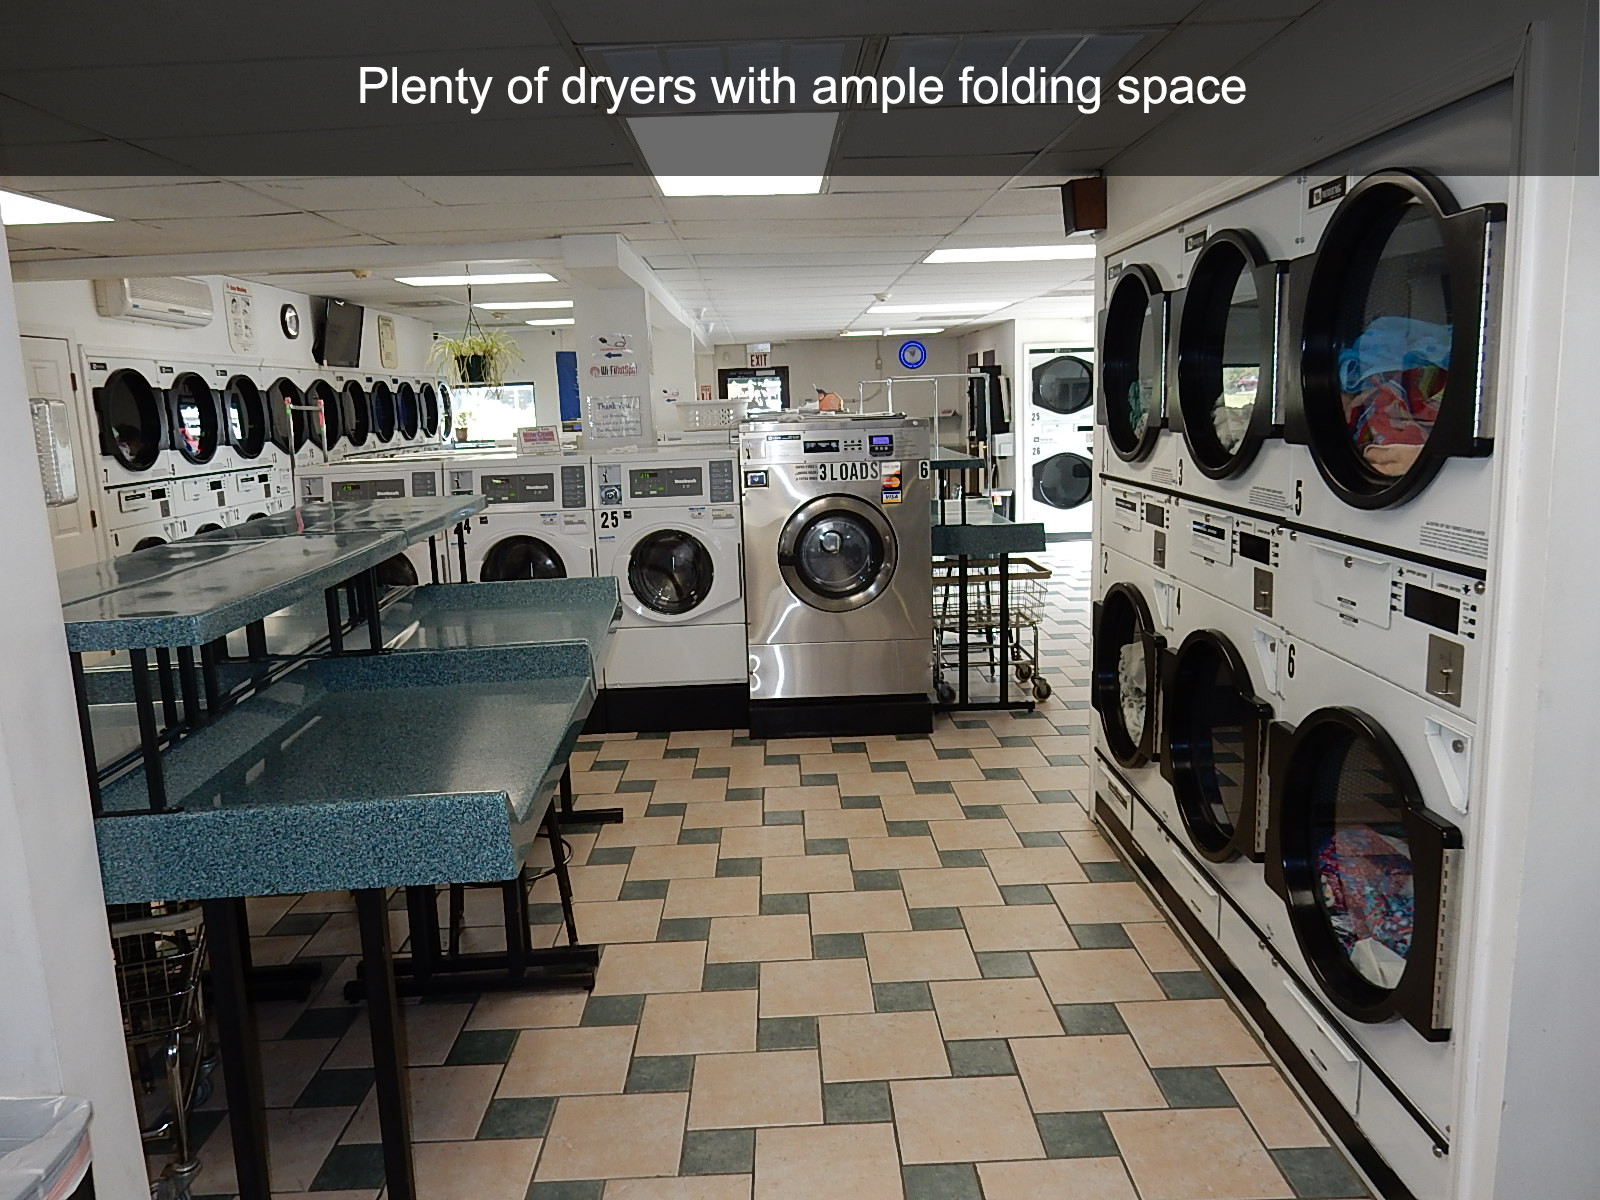 Plenty of dryers with ample folding space